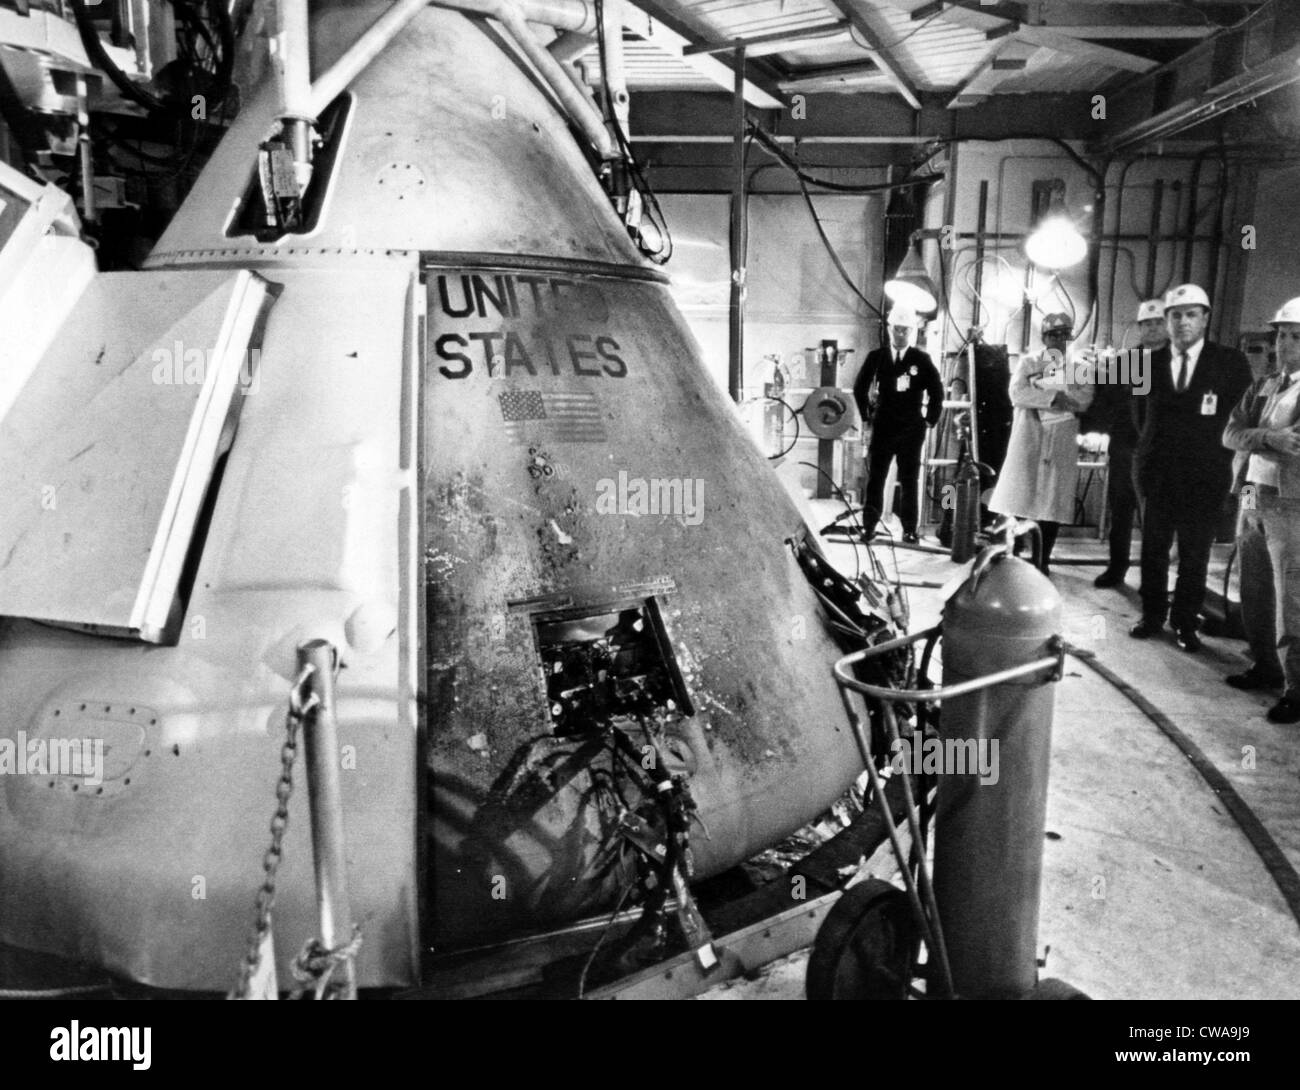 Technicians viewing the Apollo spacecraft where three flight crew members died during a launch simulation test, - Stock Image